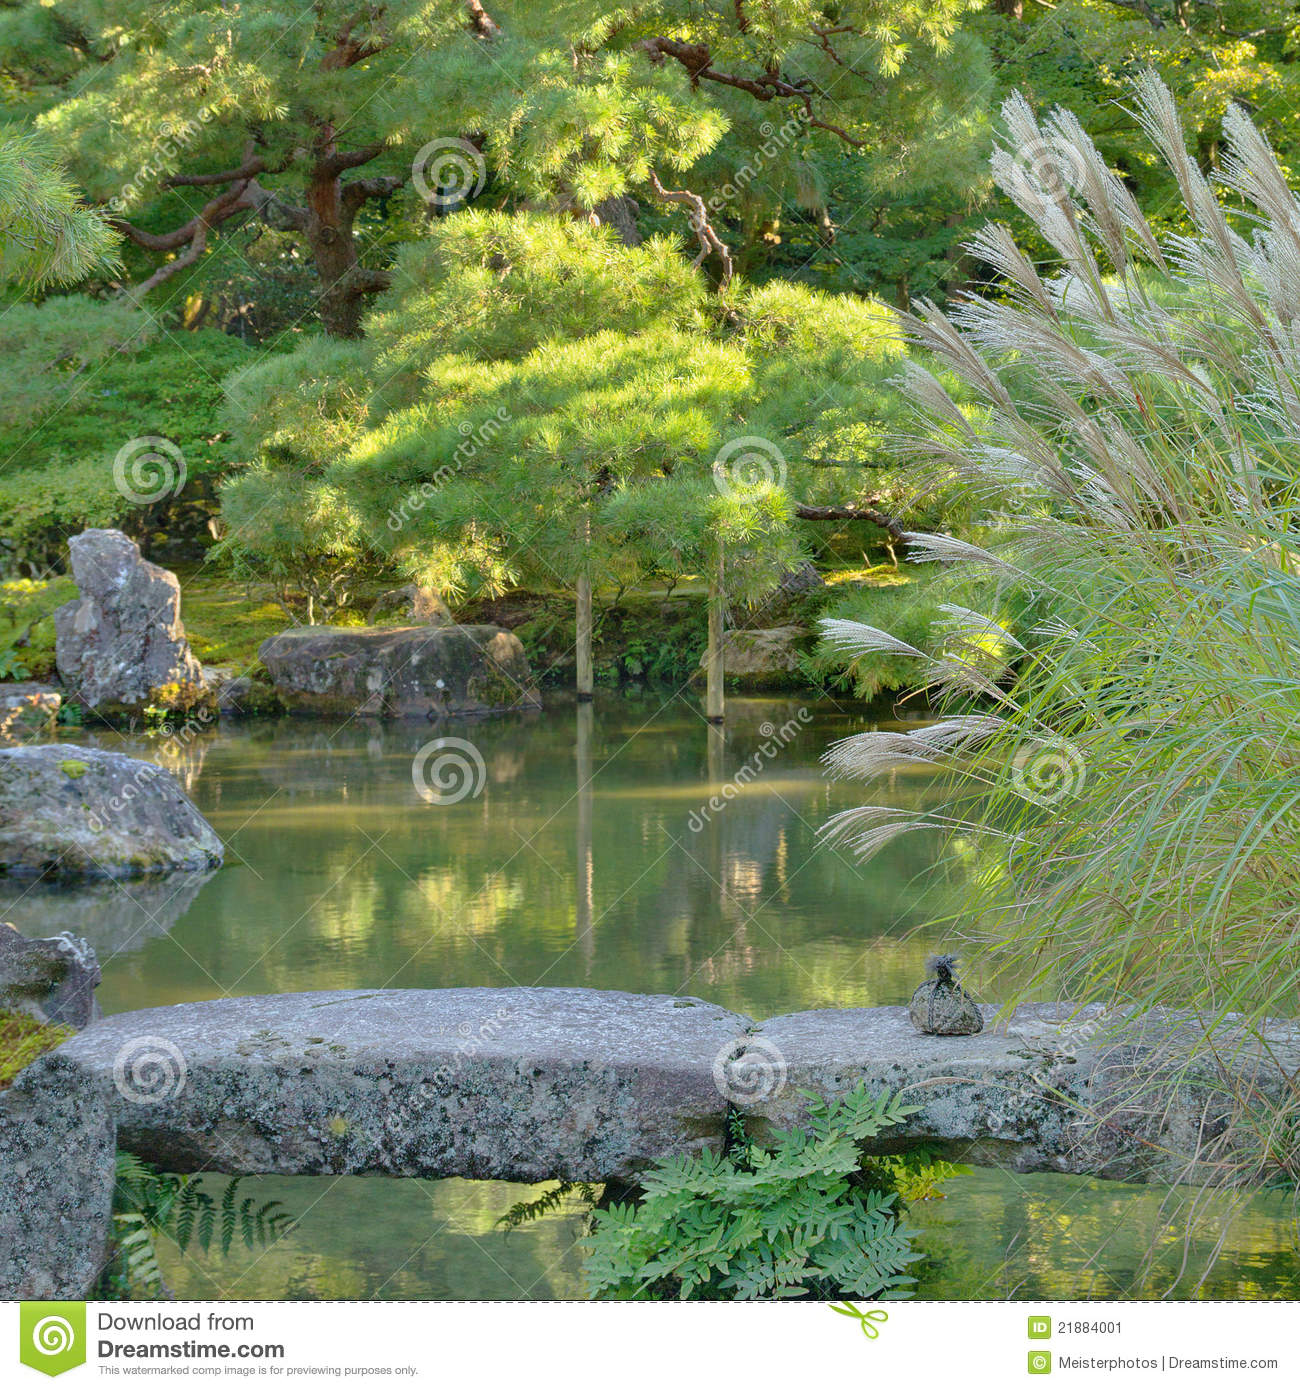 bridge garden japanese kyoto pond stone